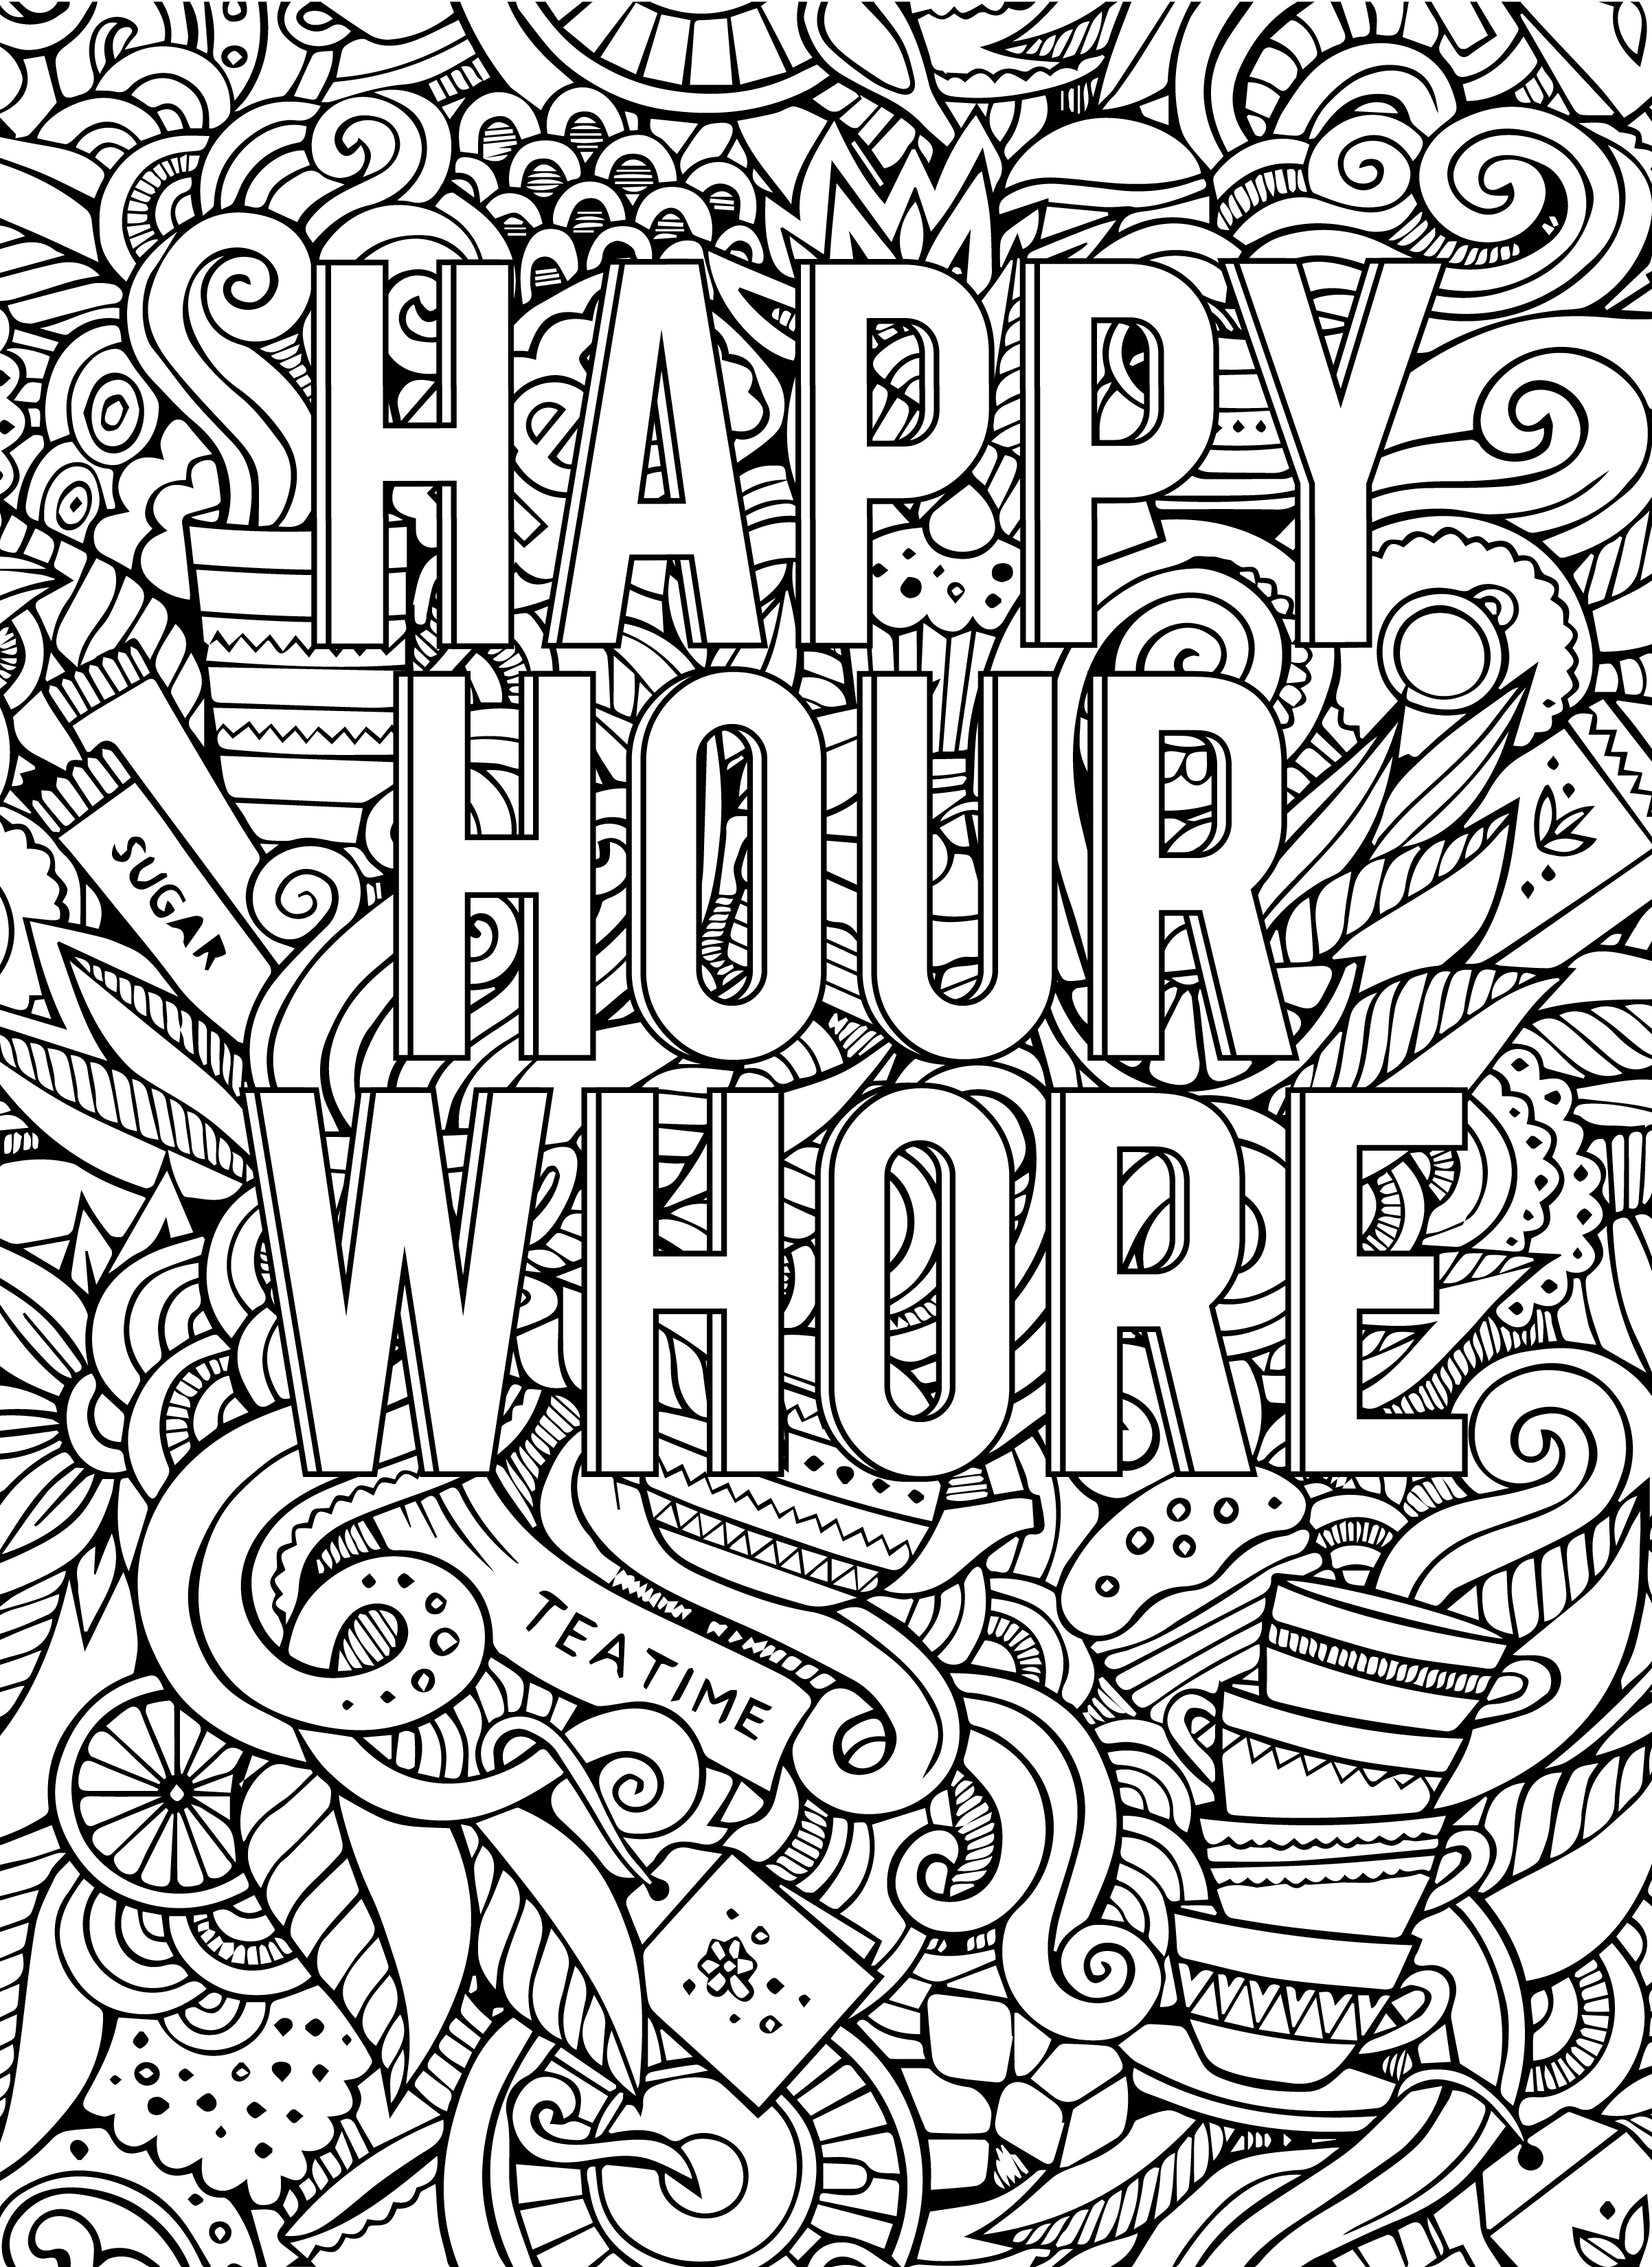 Swear Word Adult Coloring Book For Adult Pages Happy Hour Whore